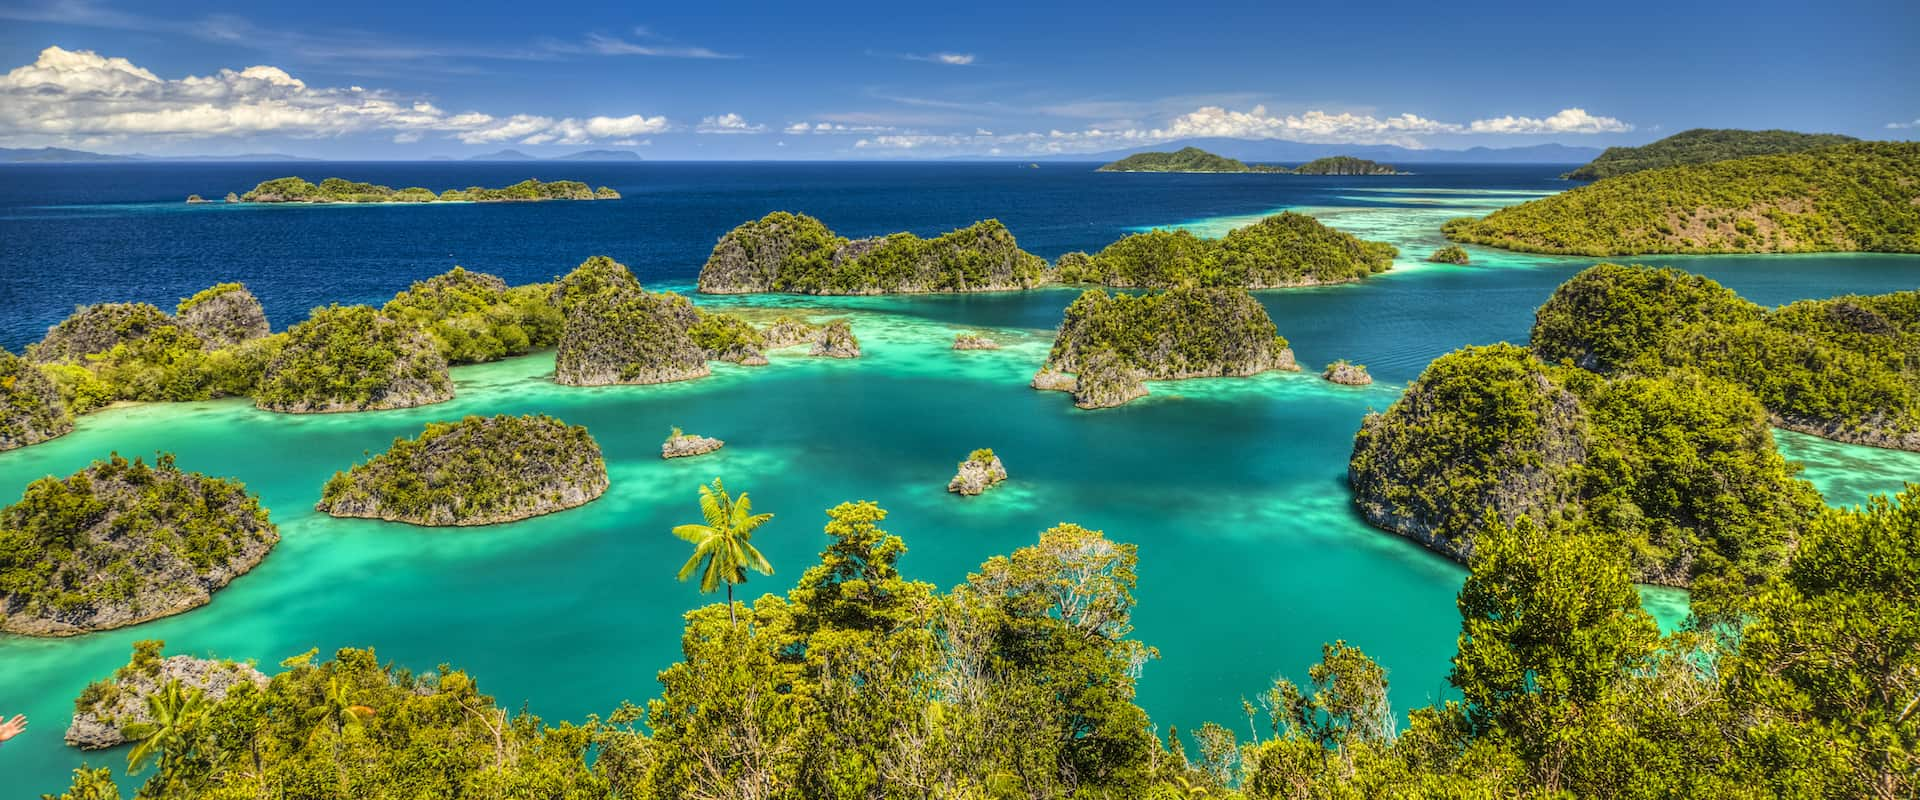 Raja Ampat Liveaboard Diving